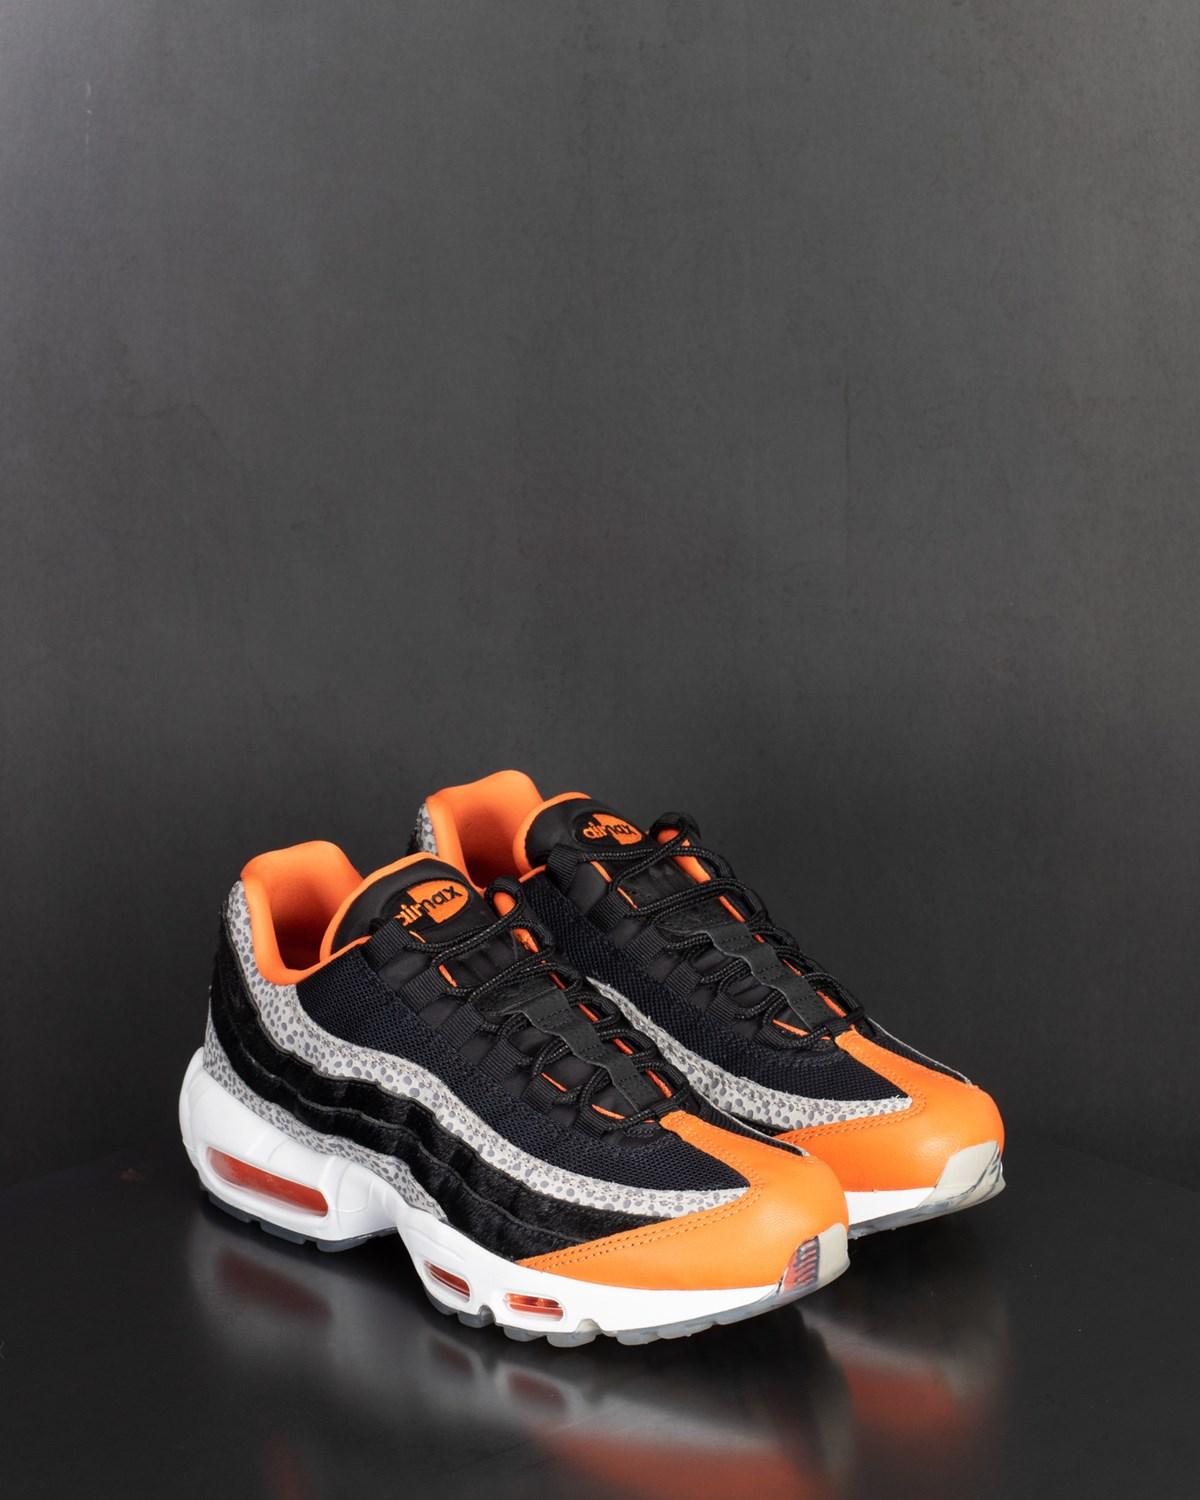 wholesale dealer 495af 443c3 Air Max 95 by Nike